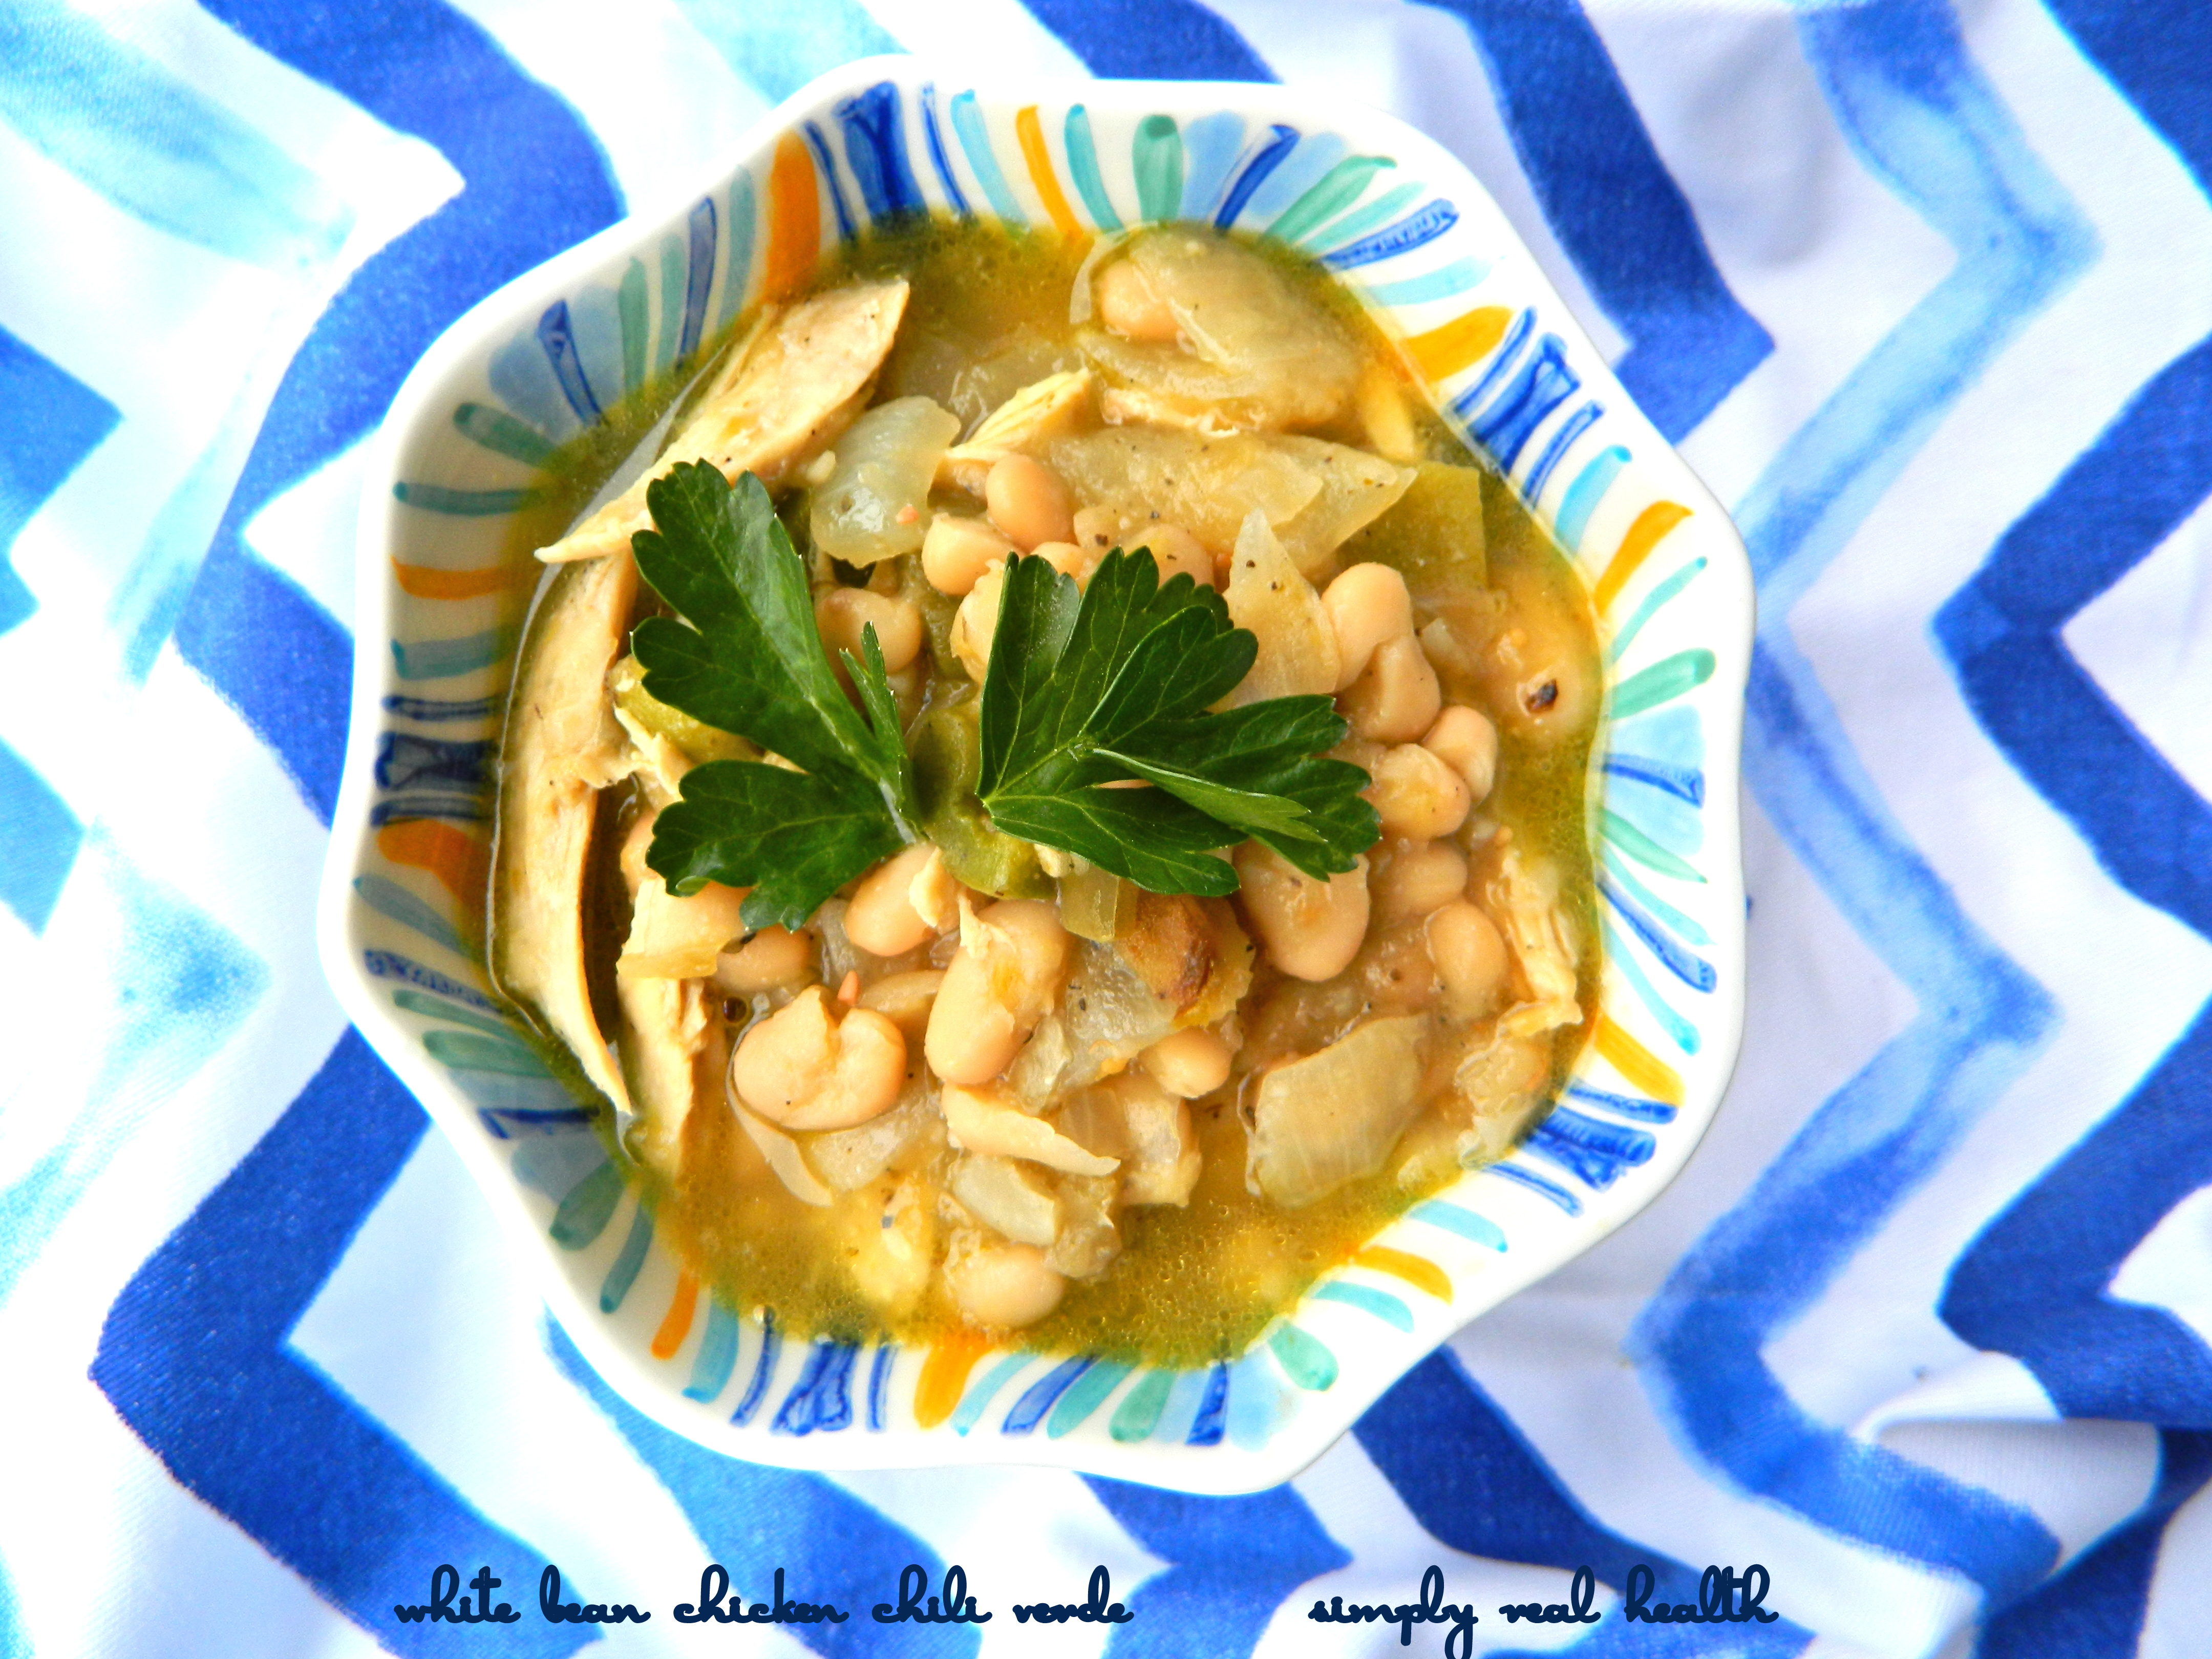 whitebean chicken chili verde